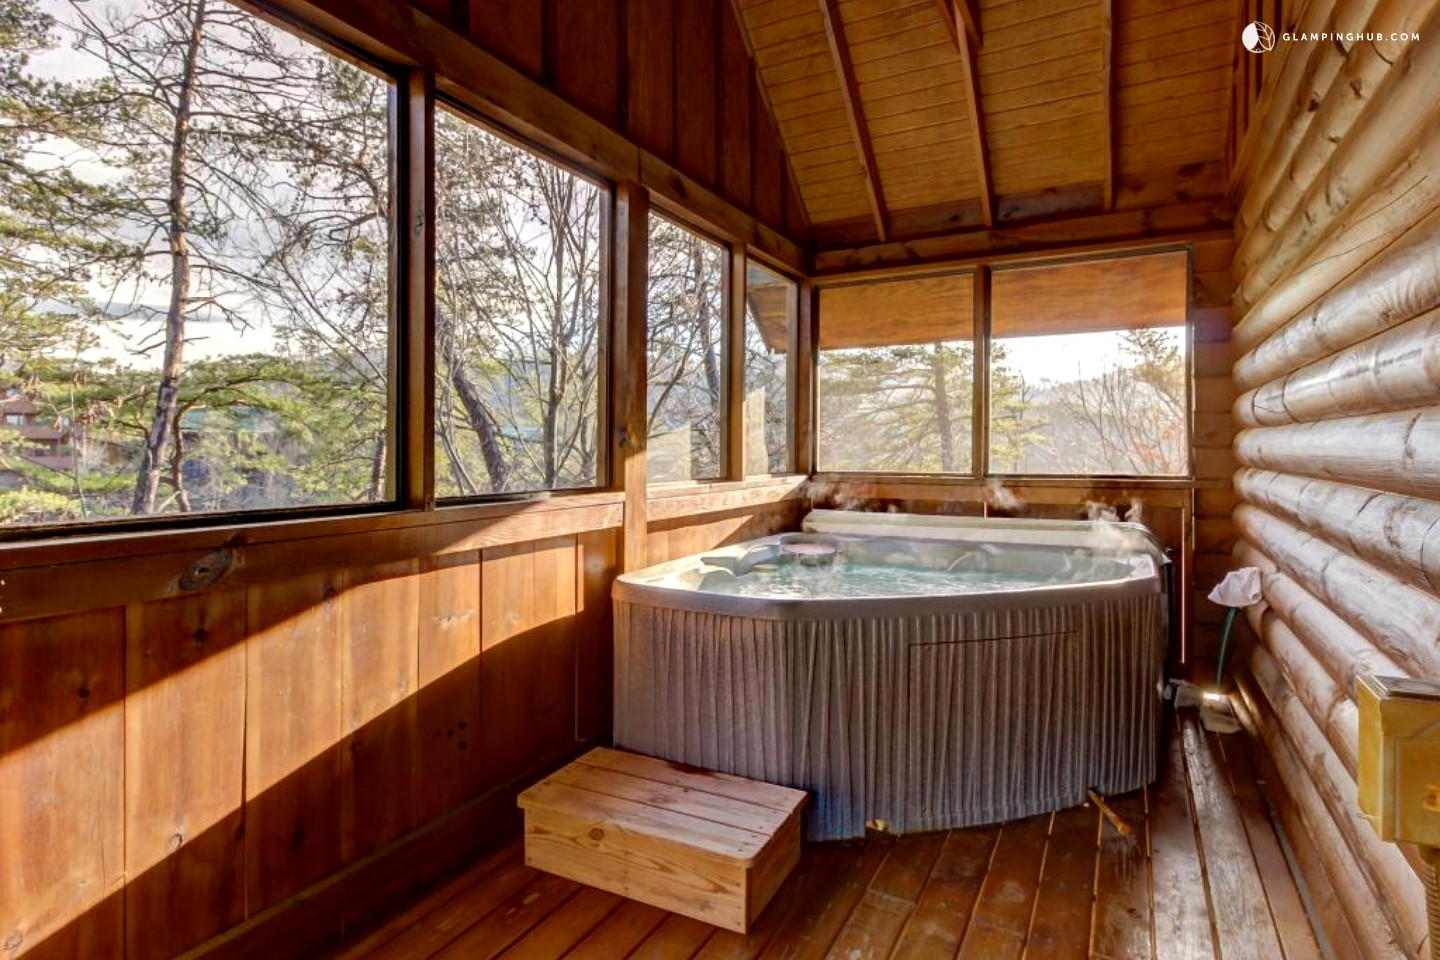 Cozy couple 39 s cabin with hot tub by great smoky mountains for Cabin in gatlinburg with hot tub